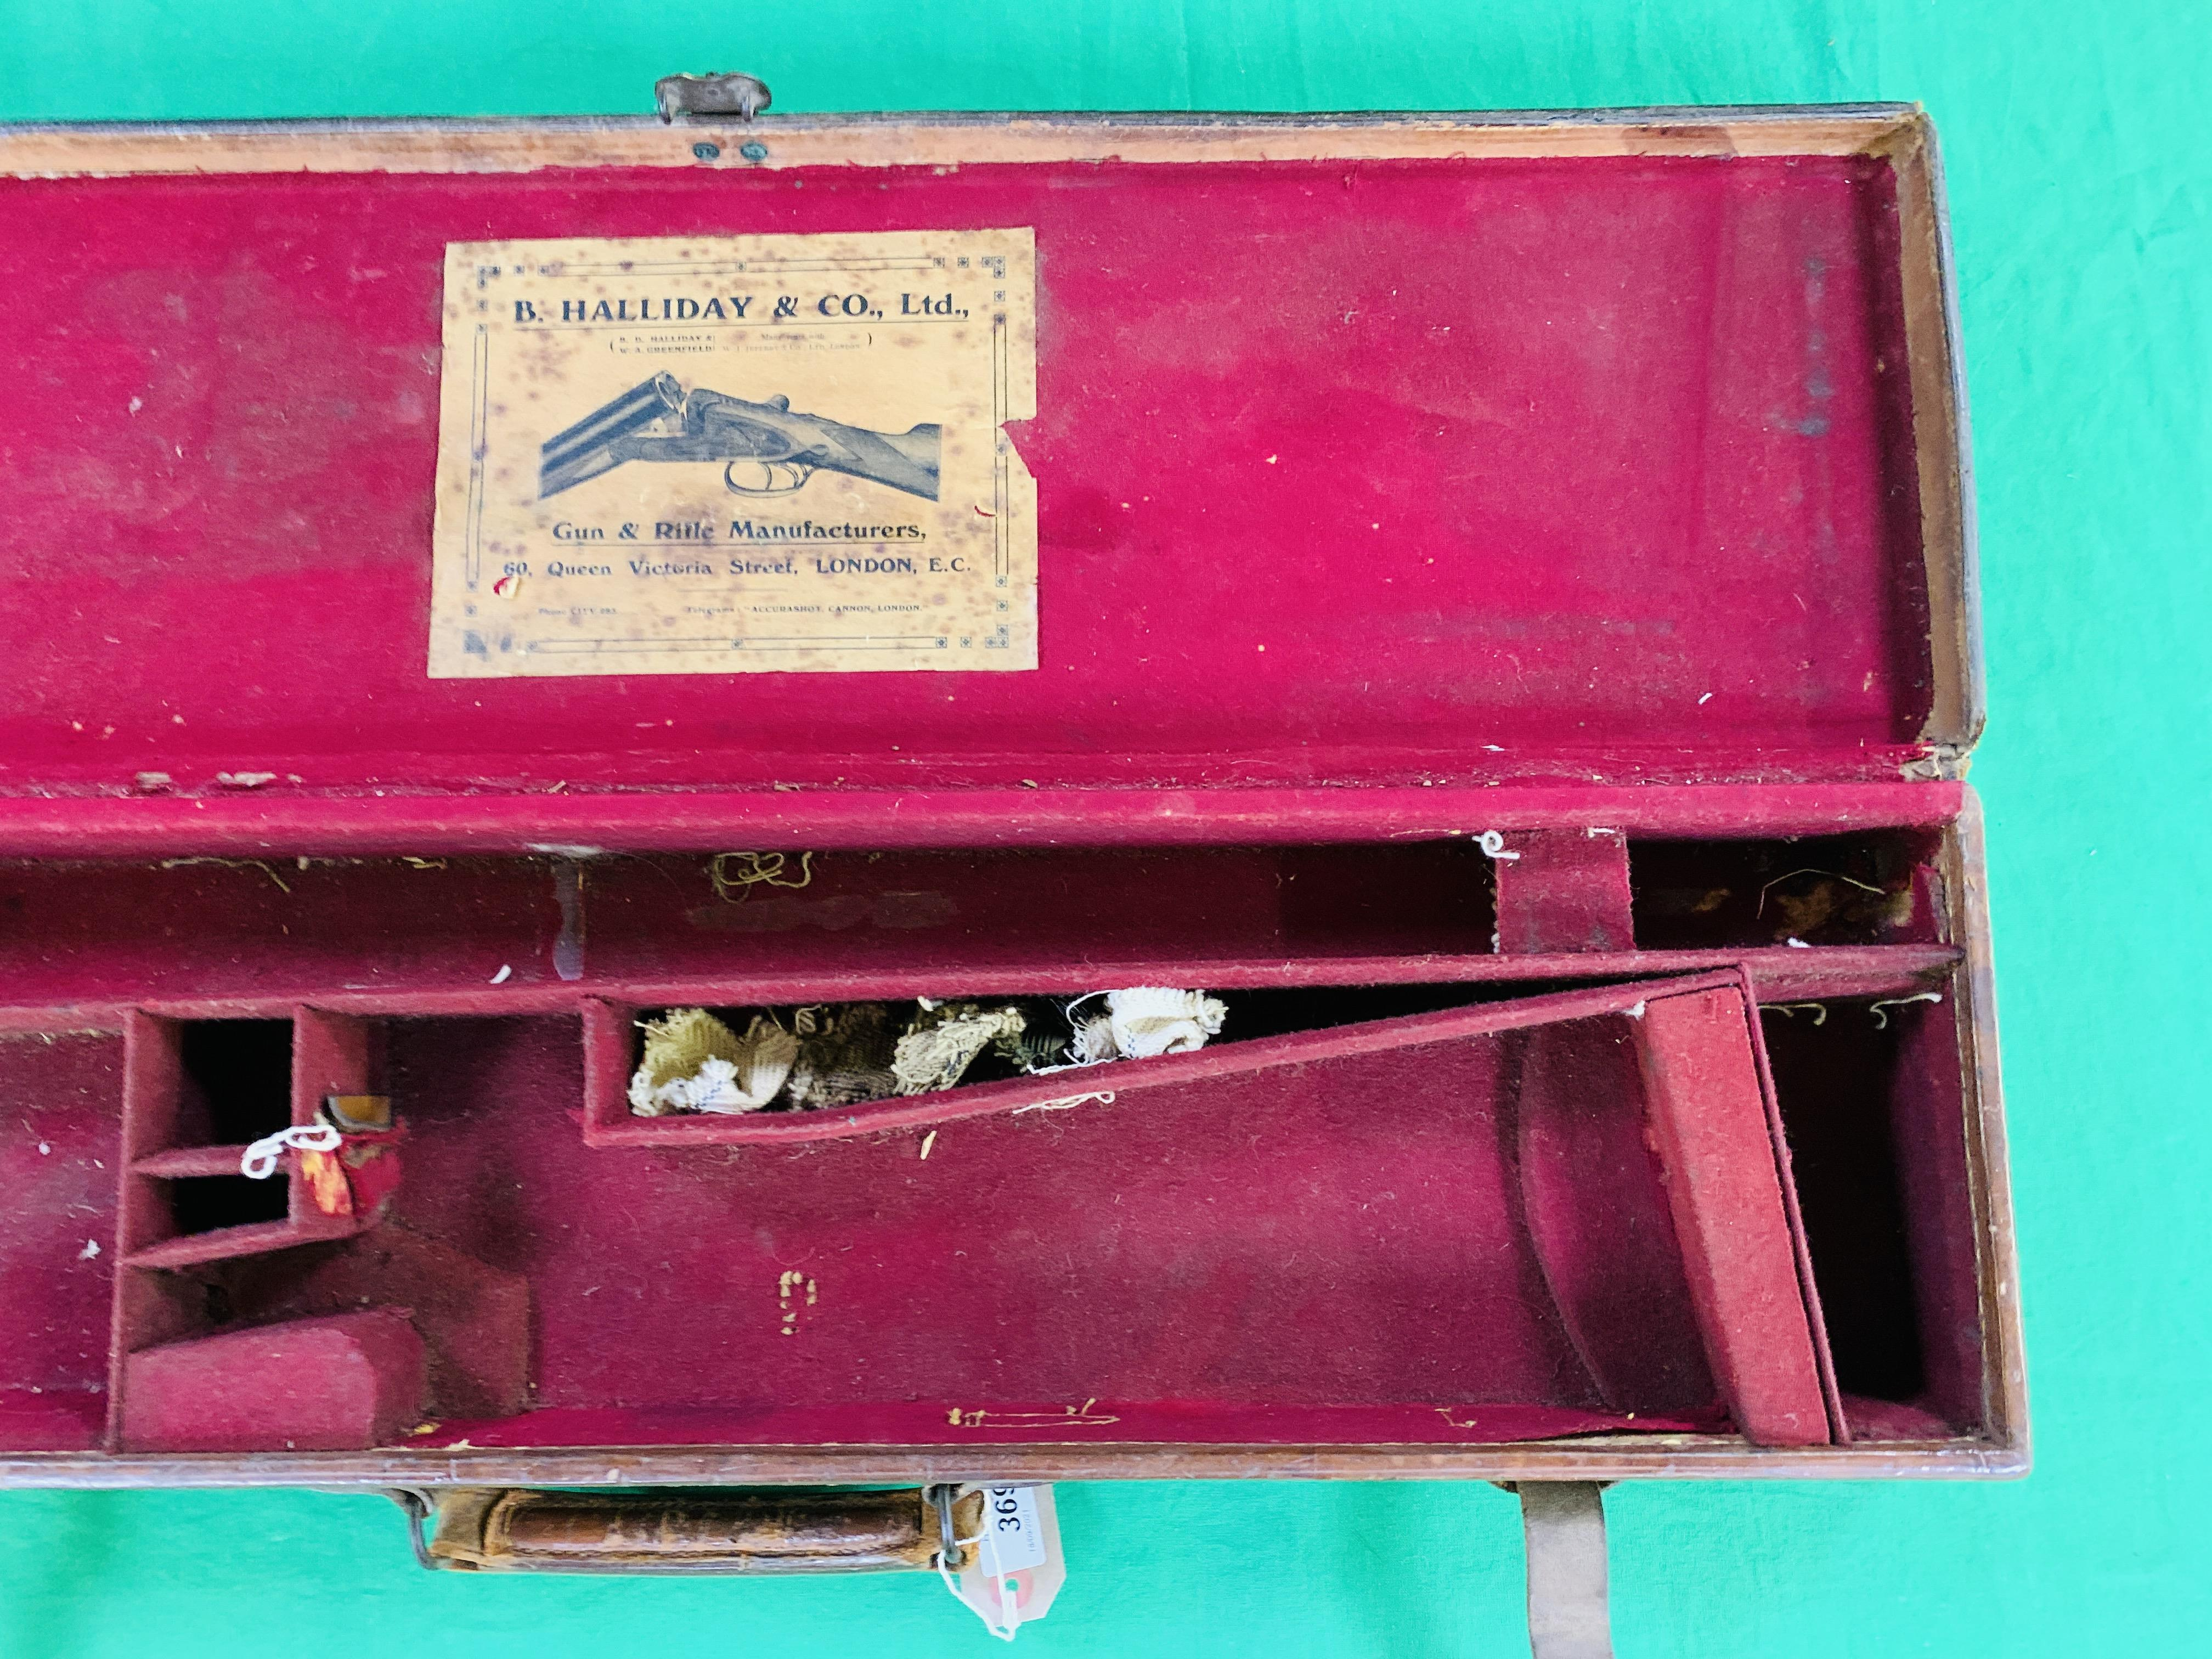 """OAK AND LEATHER 28 / 30"""" SIDE BY SIDE GUN CASE WITH B. HALLIDAY AND CO. LTD OF LONDON CASE LABEL. - Image 4 of 10"""